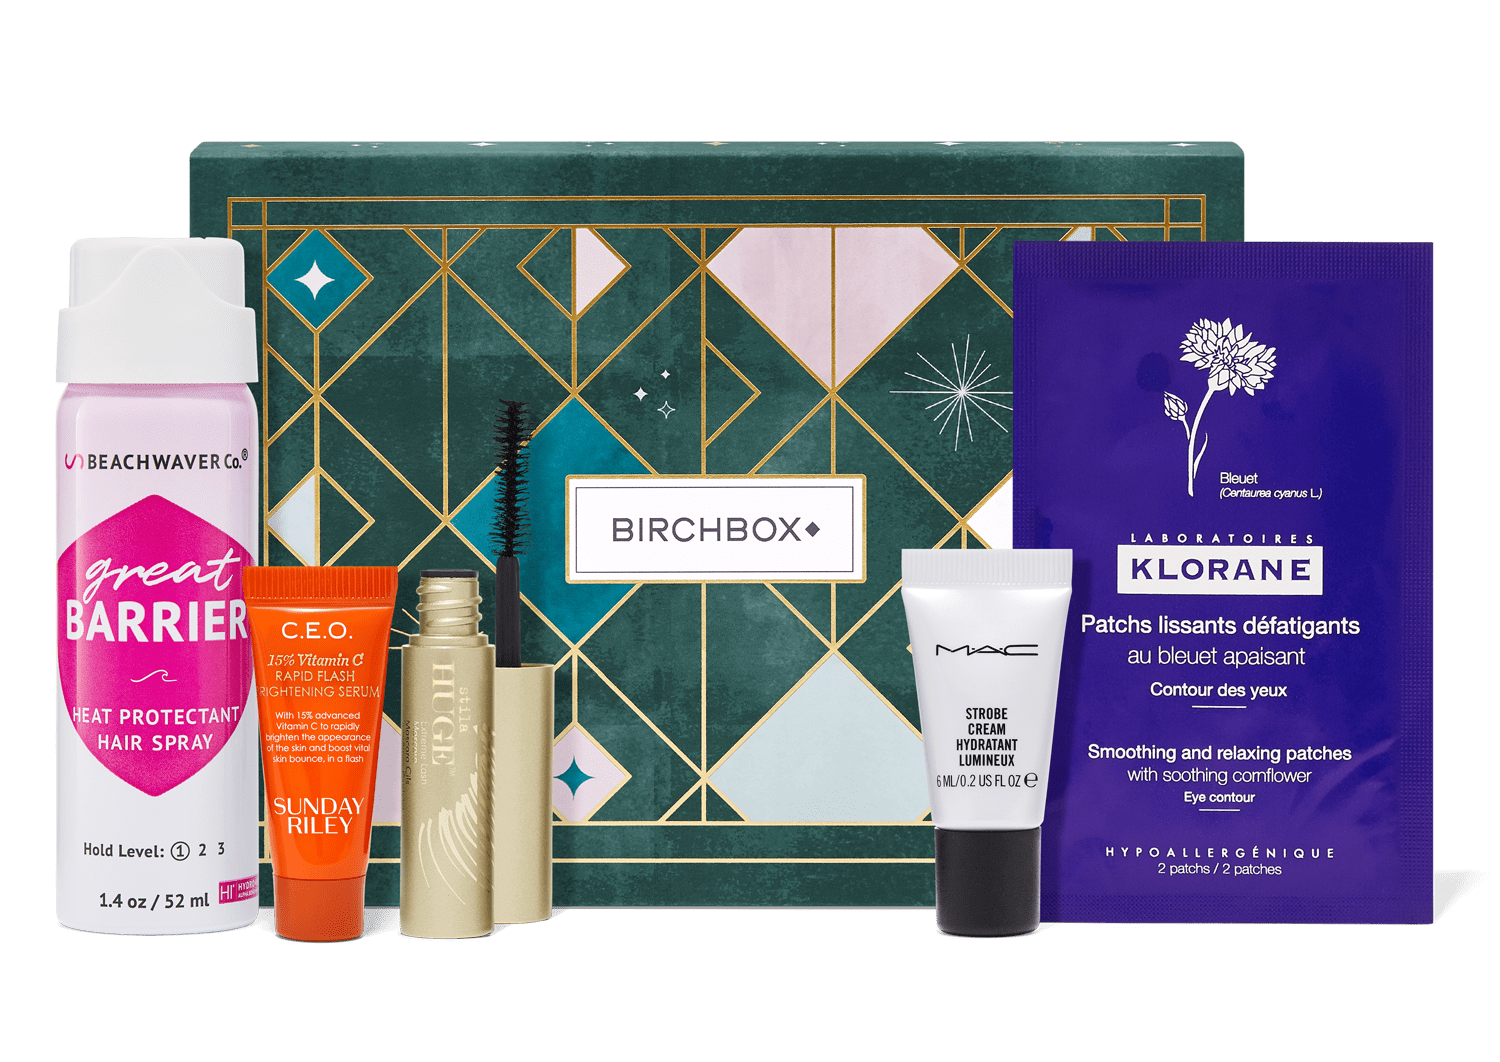 Birchbox December 2018 Curated Box Available Now in the Shop!